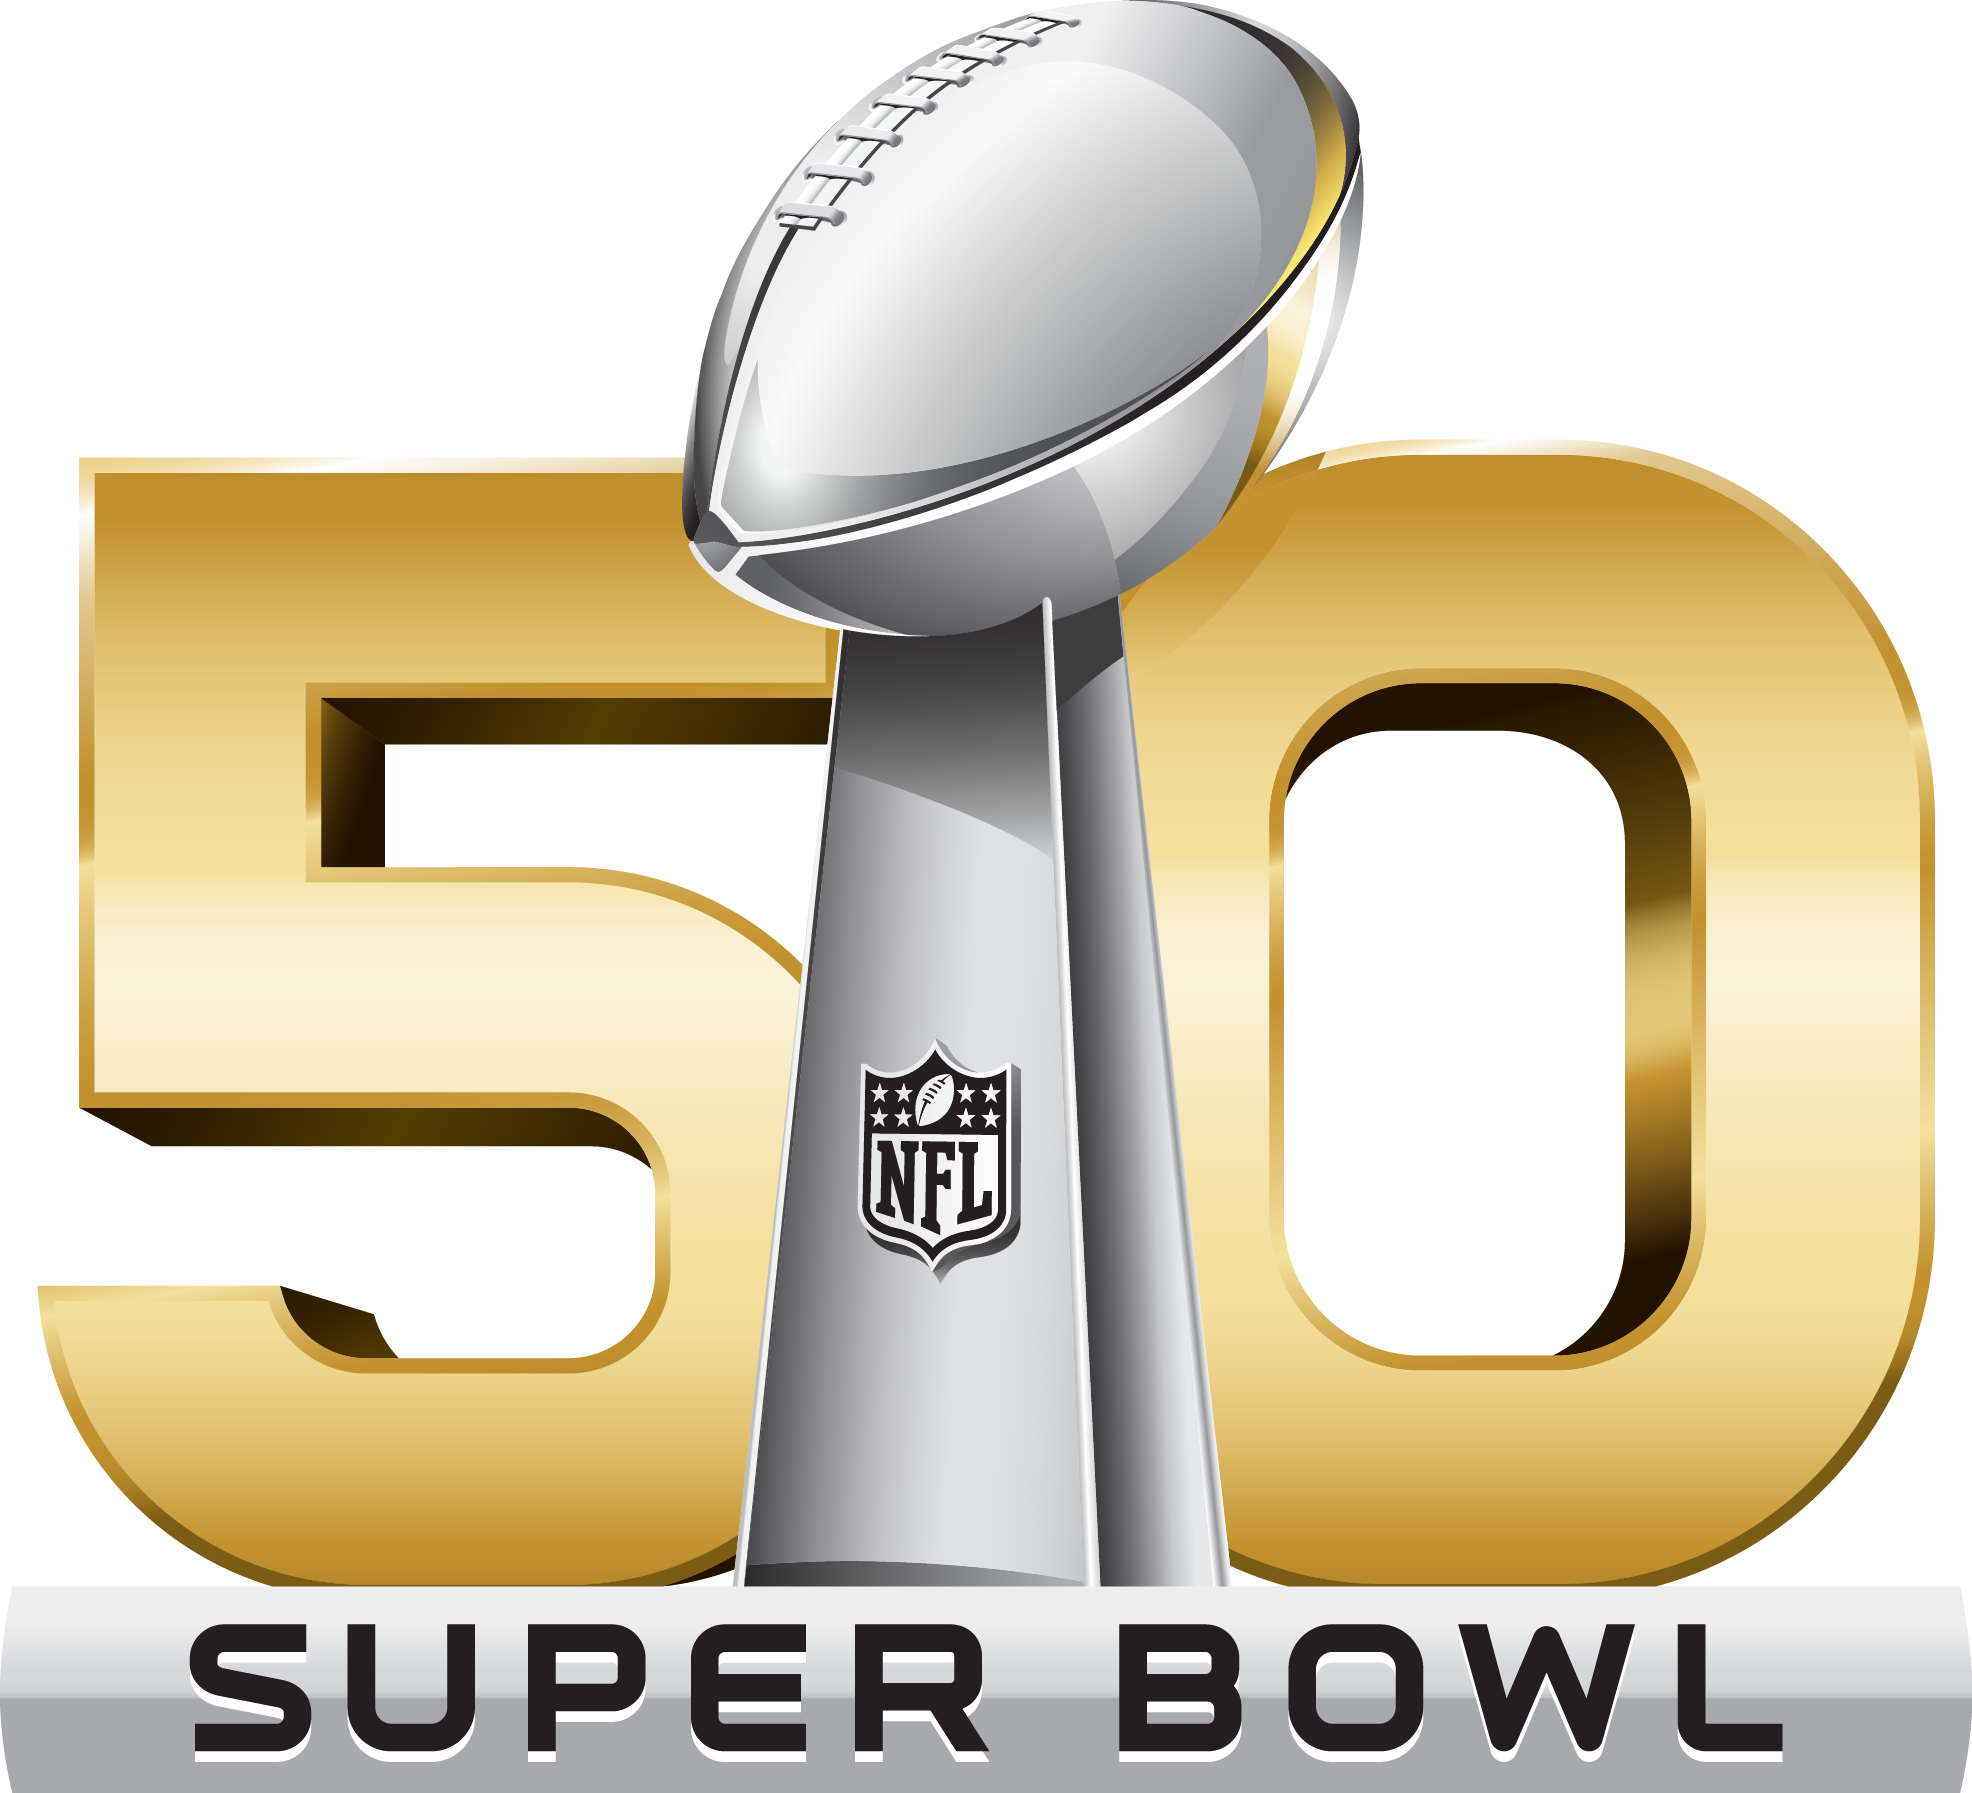 Super bowl 50 logo png. Ratings up or down